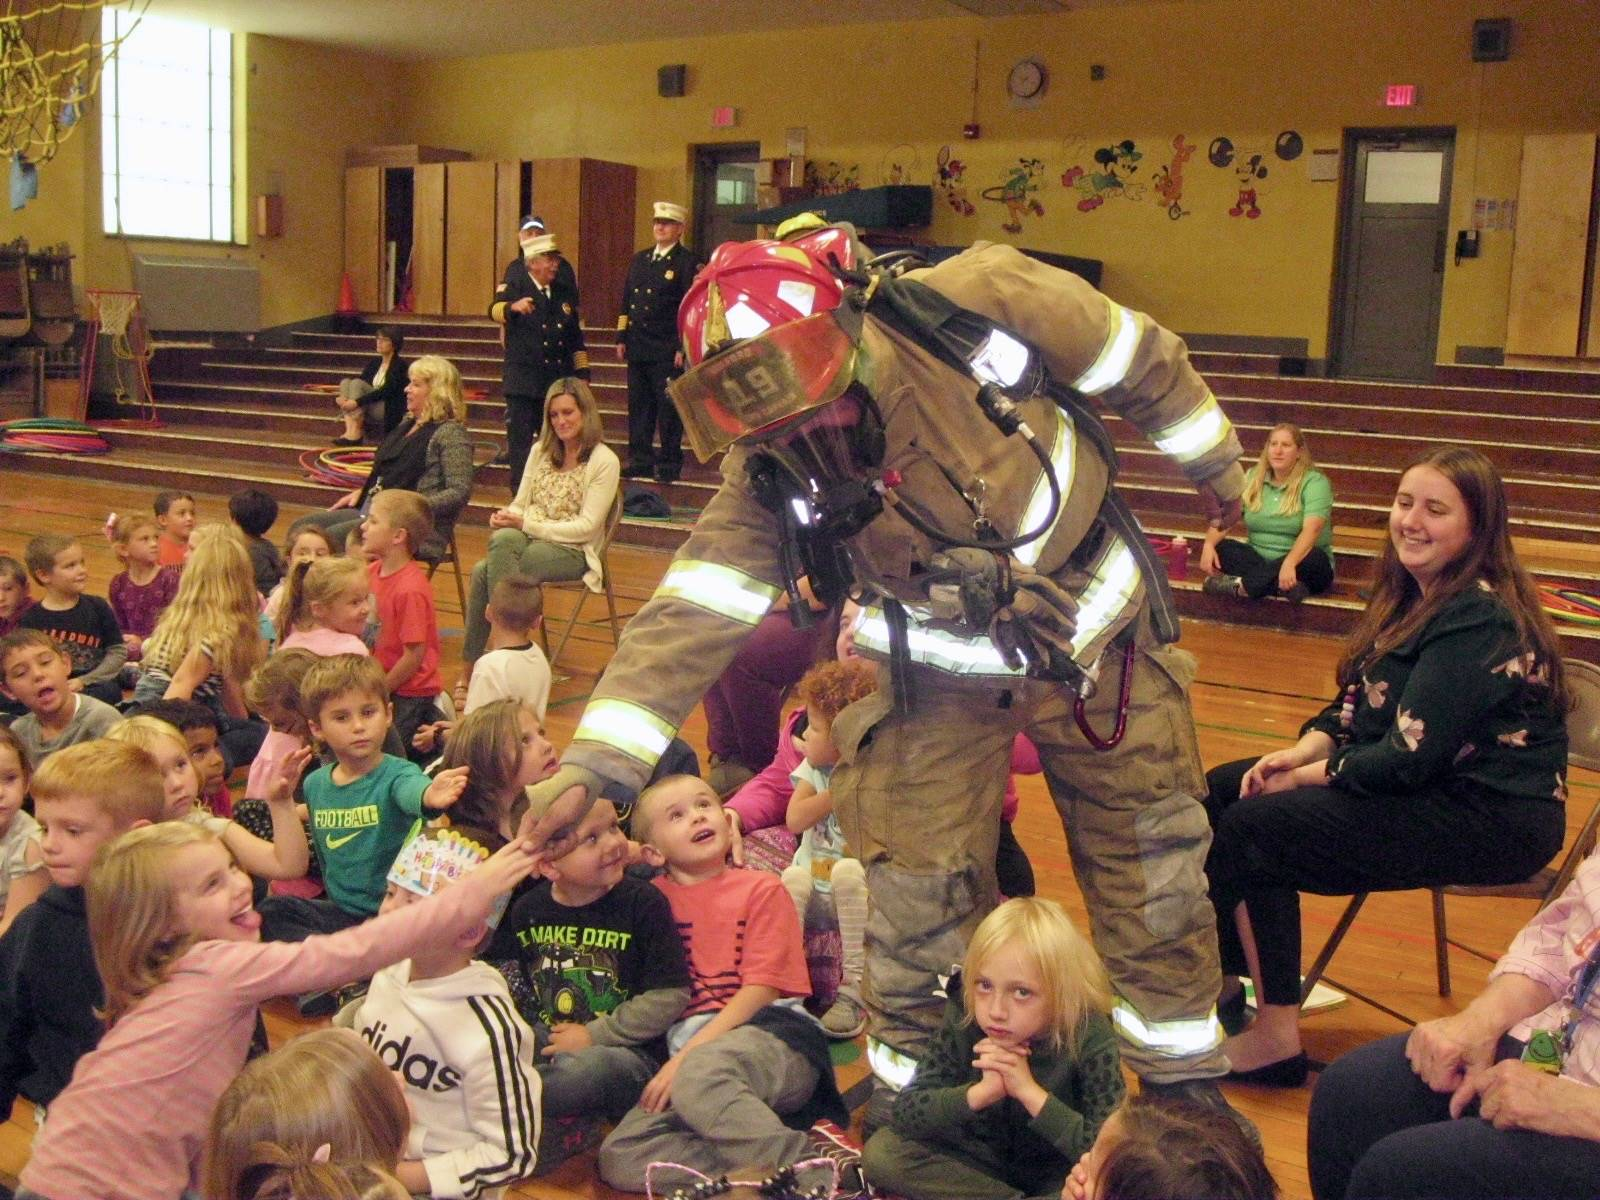 Firefighter gives students high 5's.